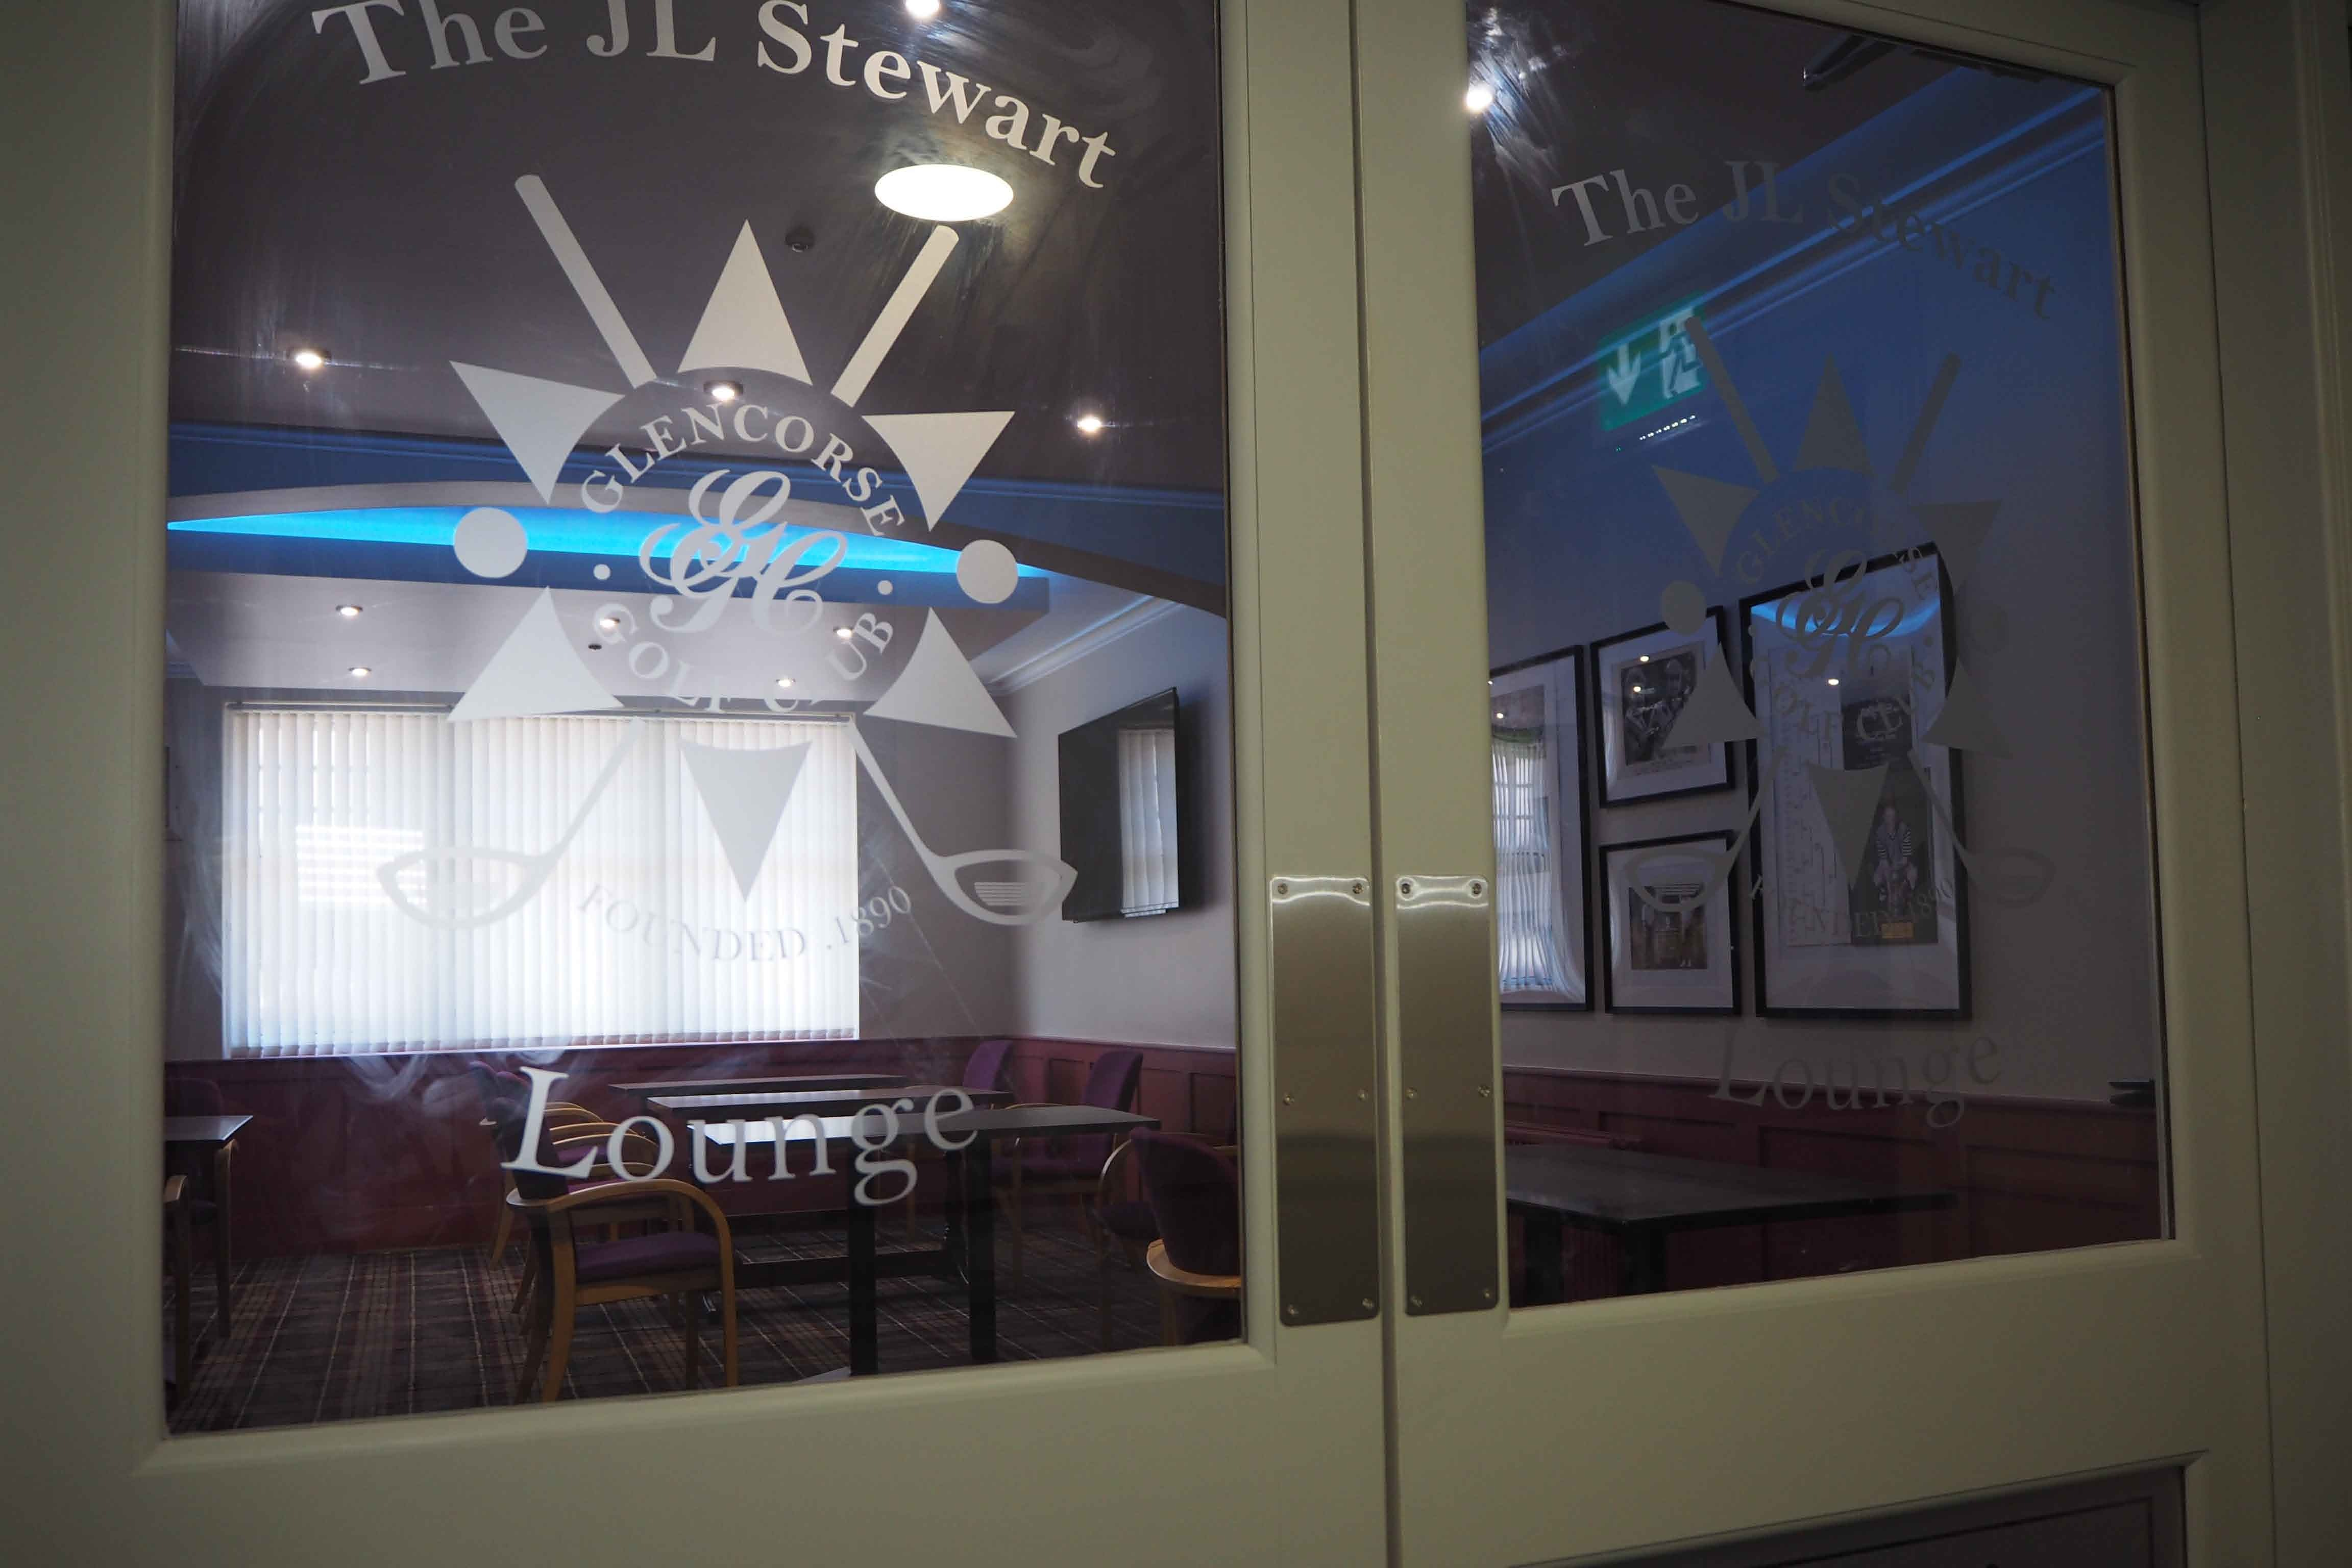 JL Stewart Lounge - away from the crowd